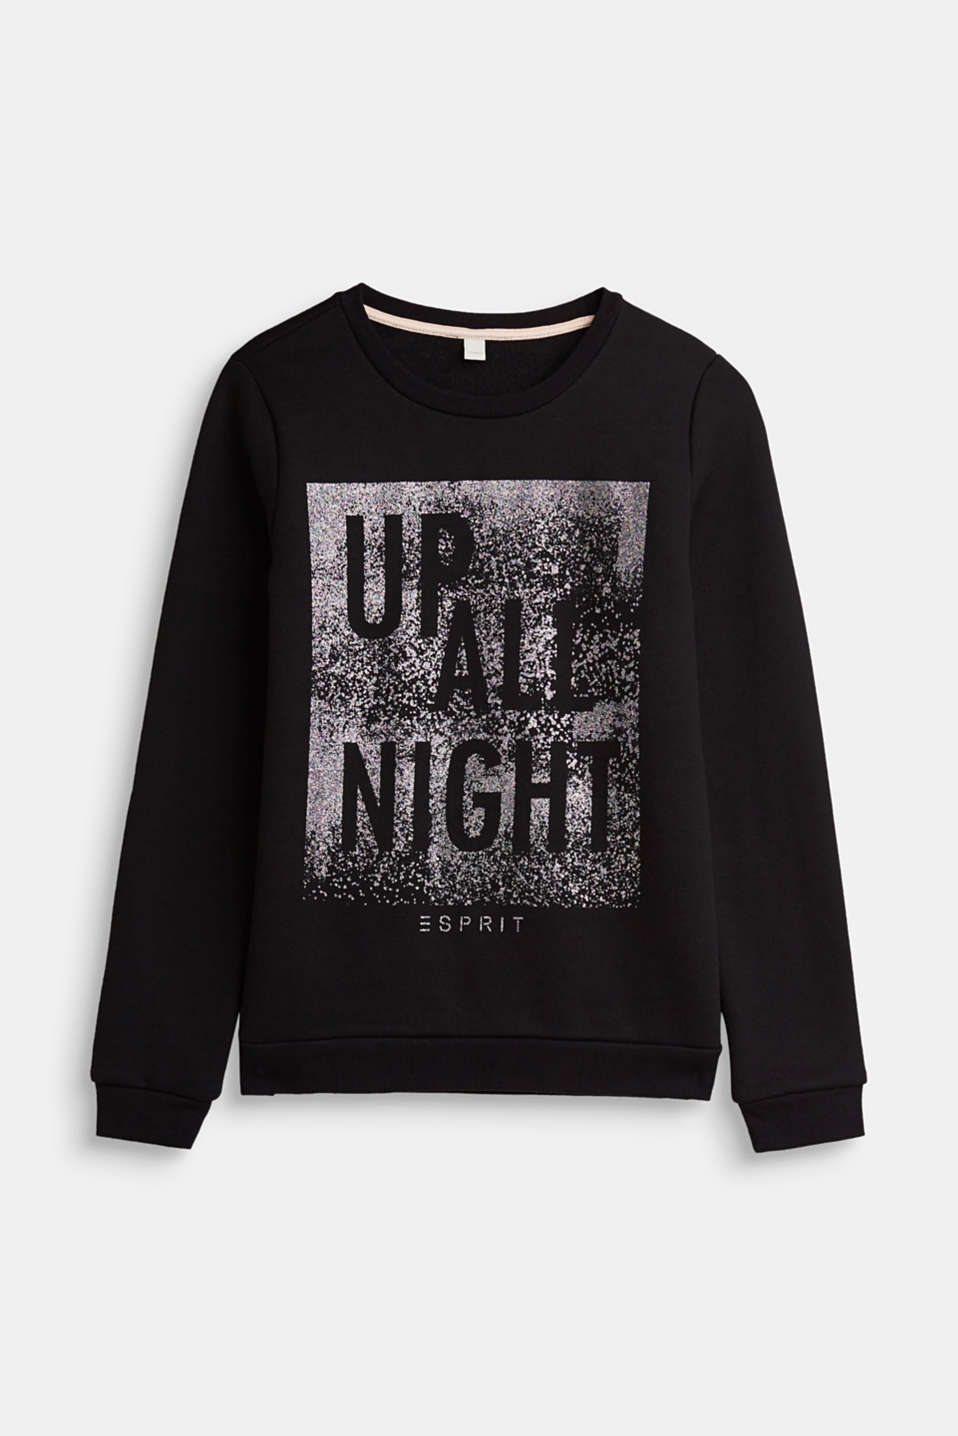 Esprit - Sweatshirt met glinsterend statement